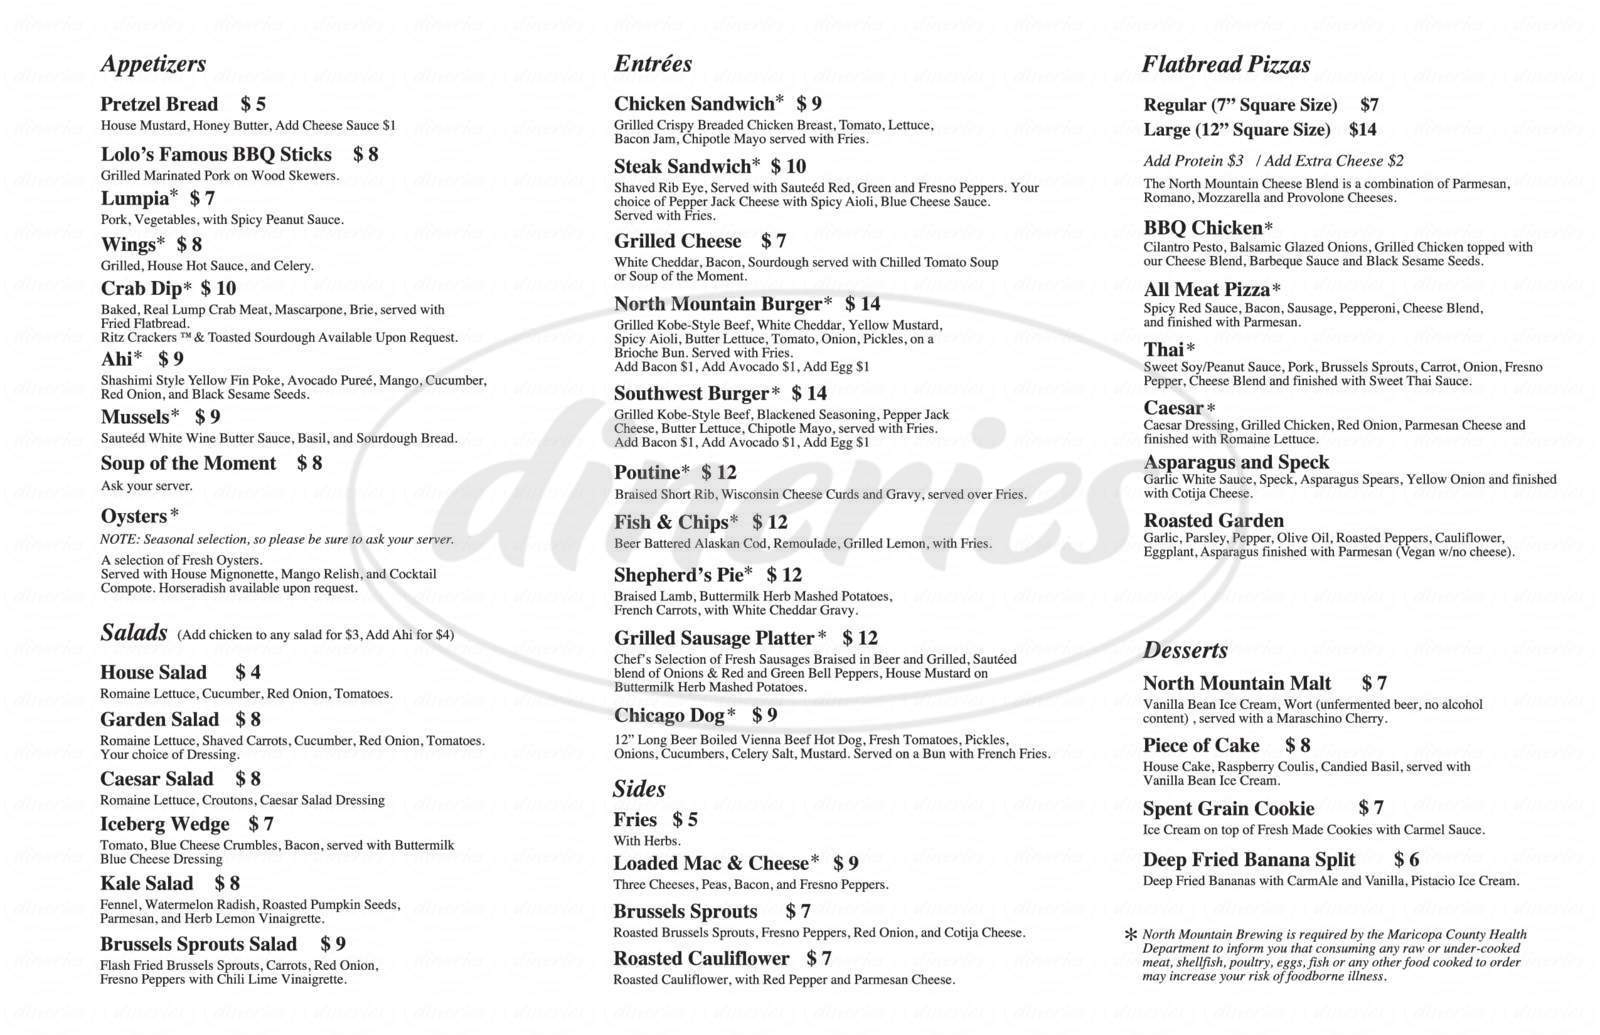 menu for North Mountain Brewing Co.